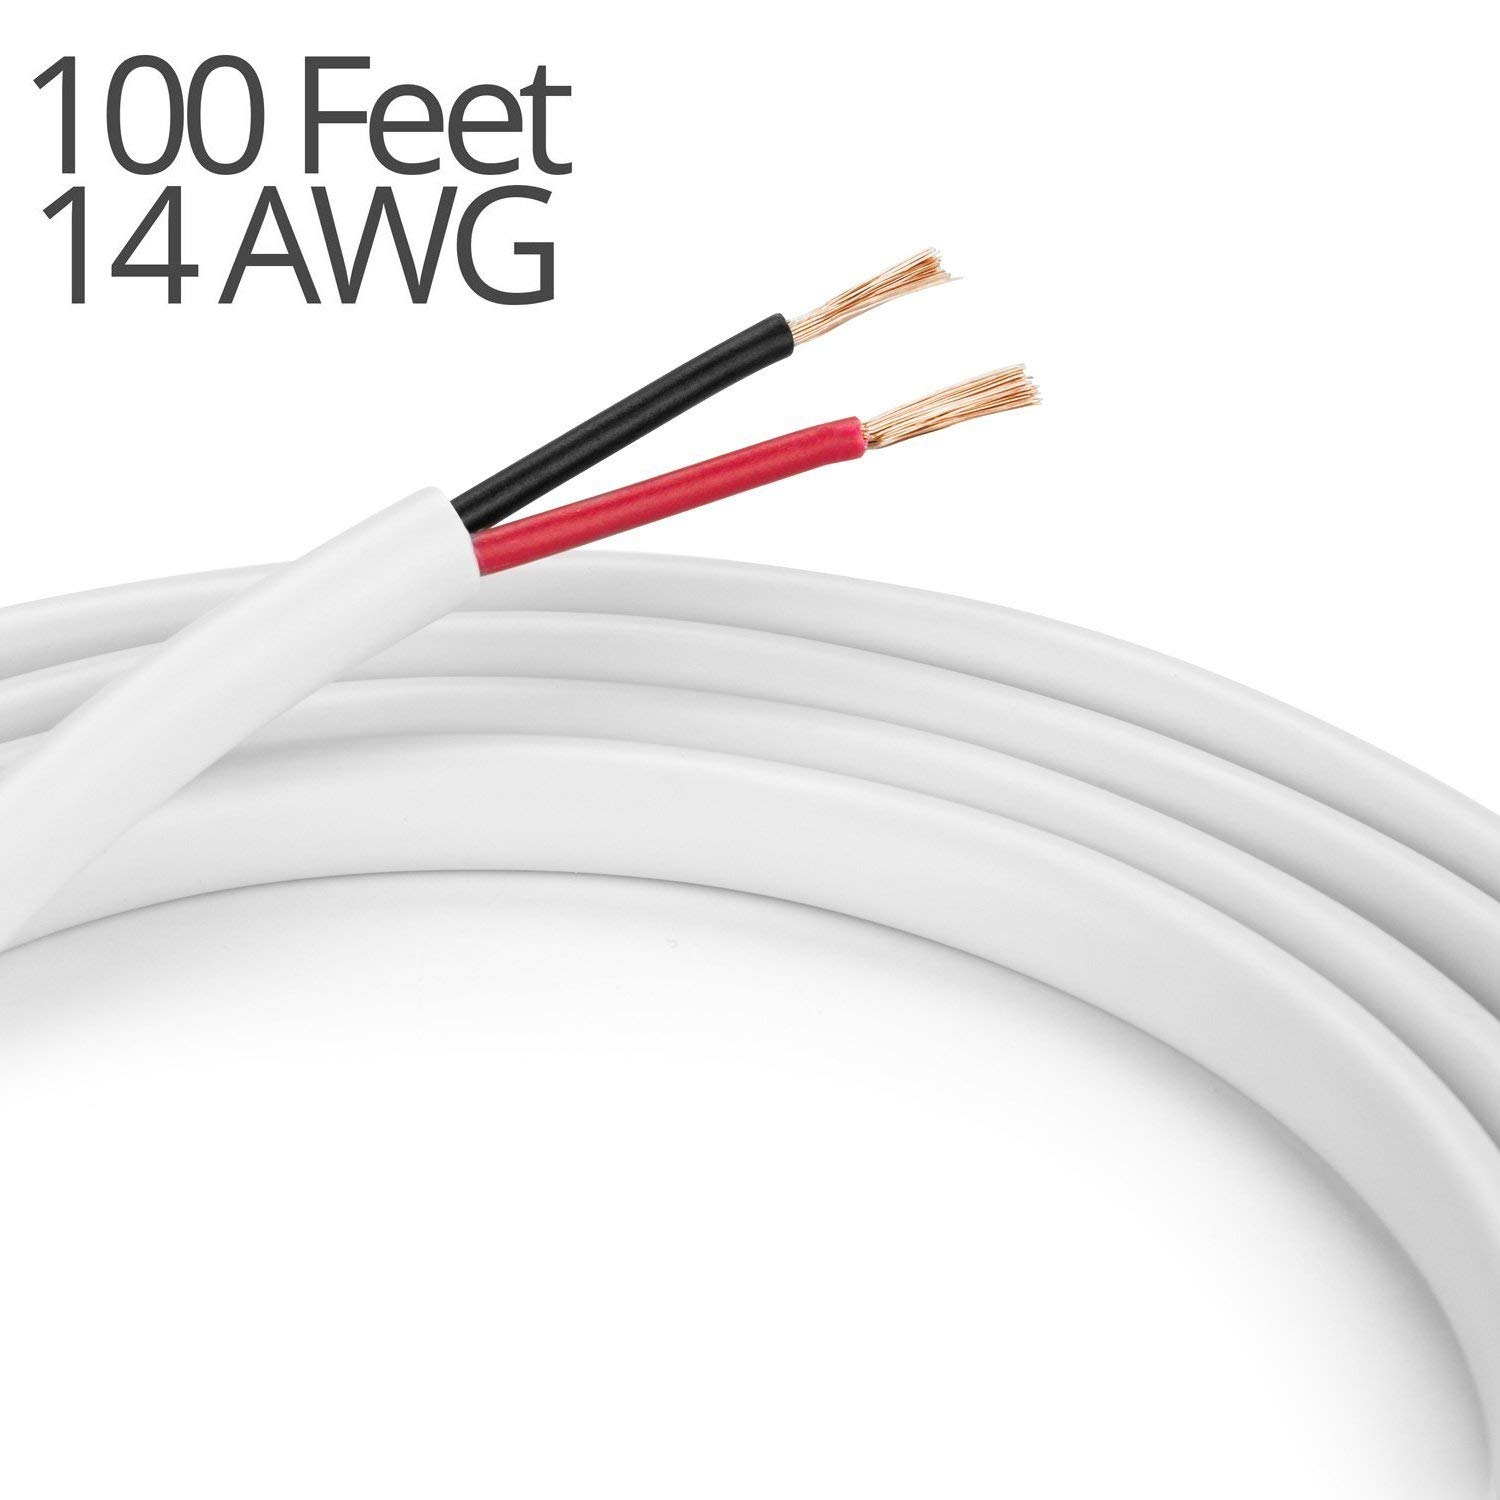 K-tech In Wall Speaker Wire 14AWG UL CL2 Rated 2-Conductor Wire White - Oxygen Free Bare Copper for Home Theater and Car Audio (2-Conductor, 100 Feet)